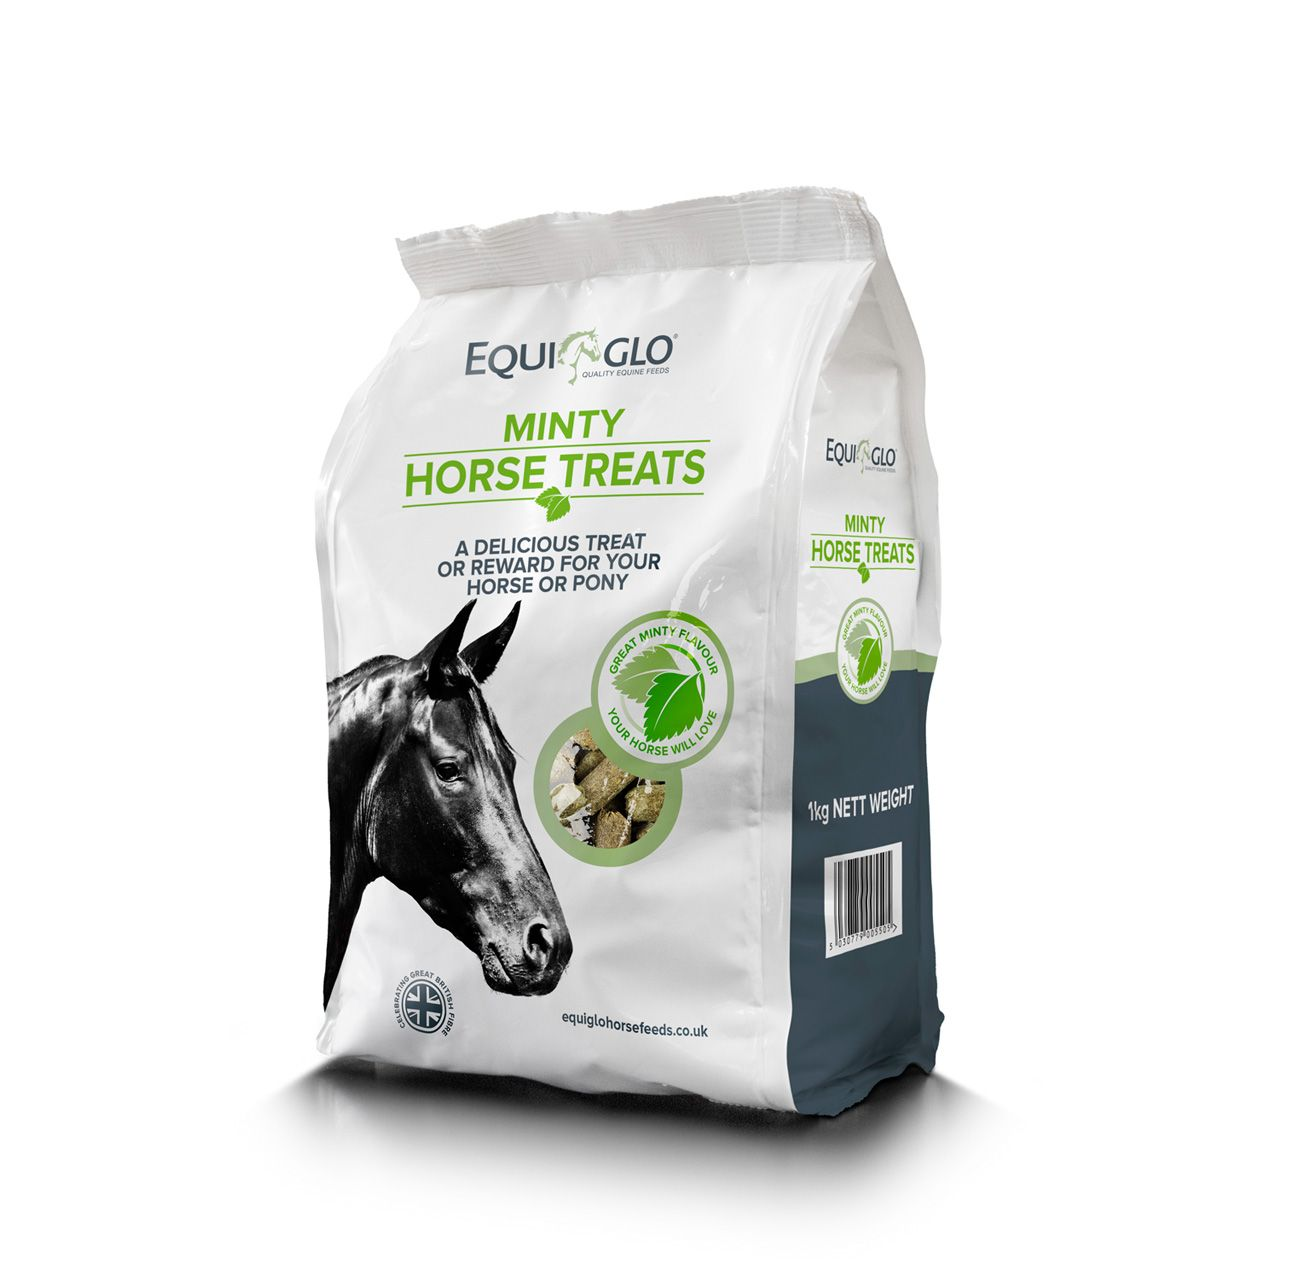 Equi Glo minty horse treats packaging by FSG Design